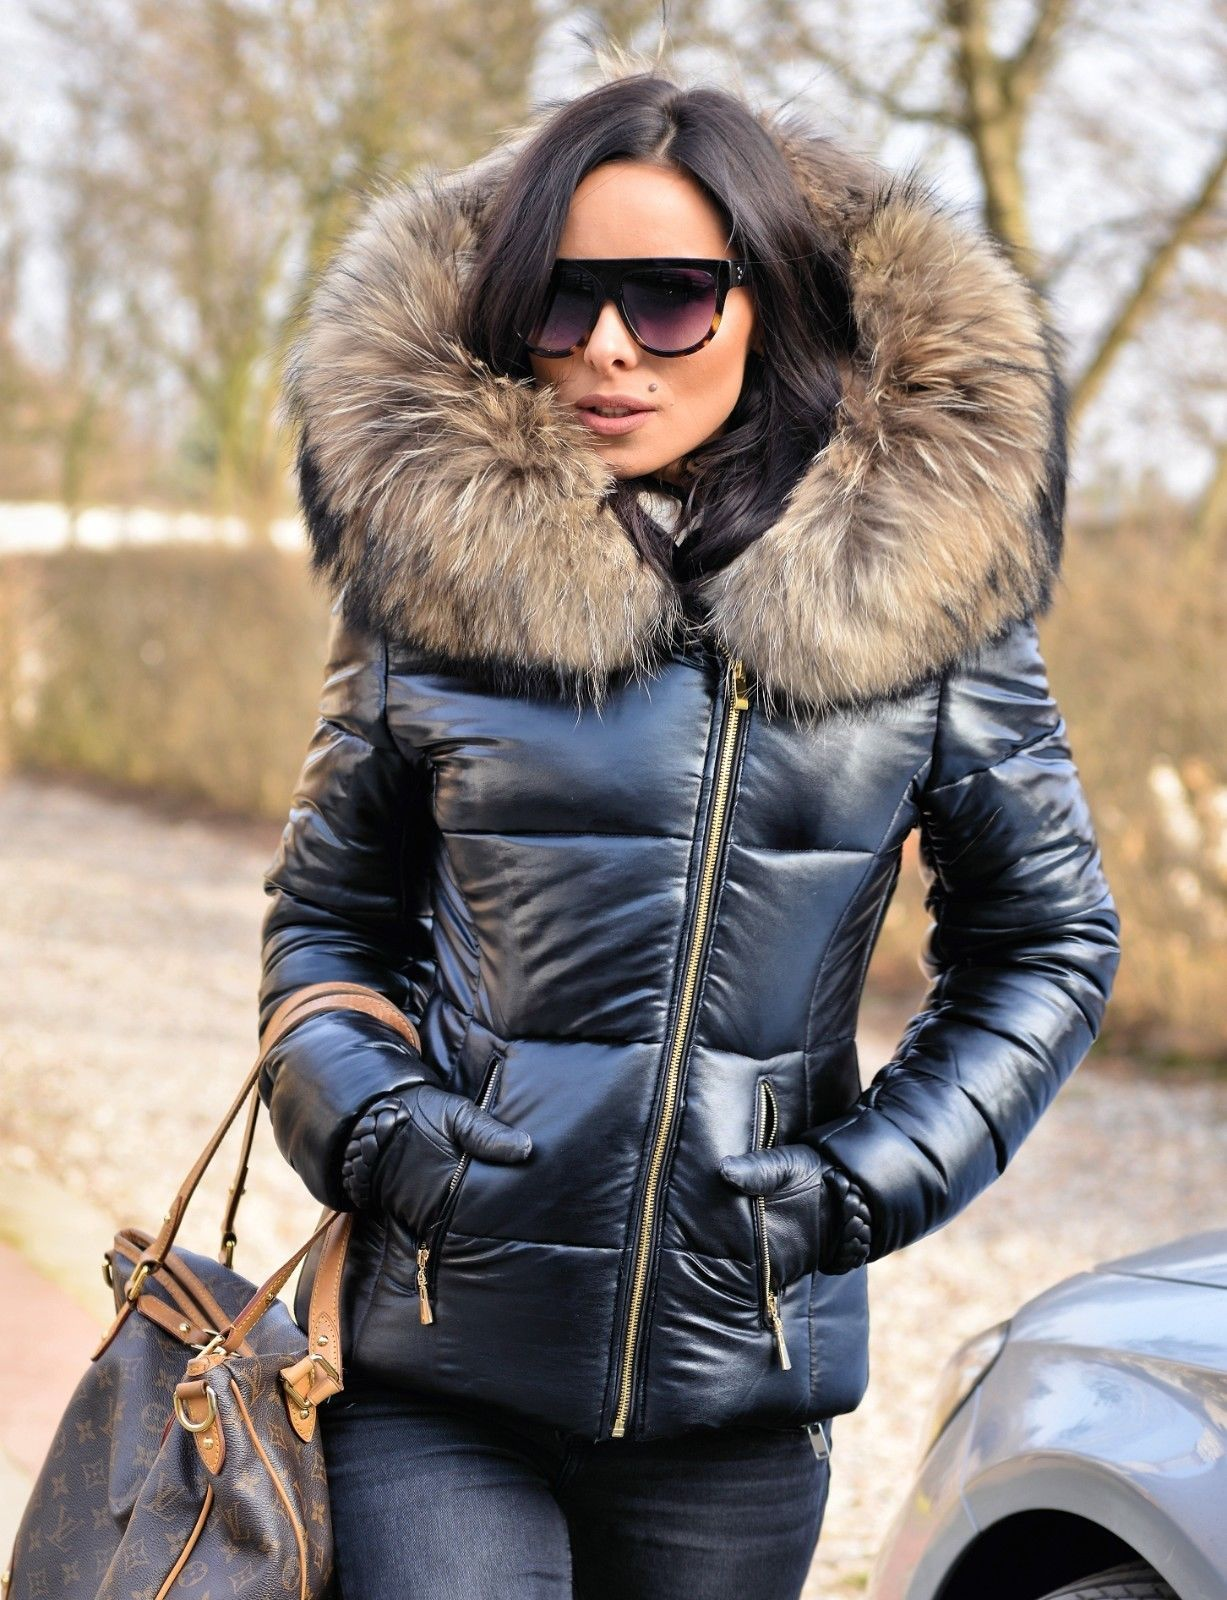 b9fa820021 METALIC BLACK DOWN JACKET WITH HOOD & FUR. this year our proposal is a  metallic silver jacket with finnraccoon fur. REAL FINNRACCOON FUR ON THE  HOOD.